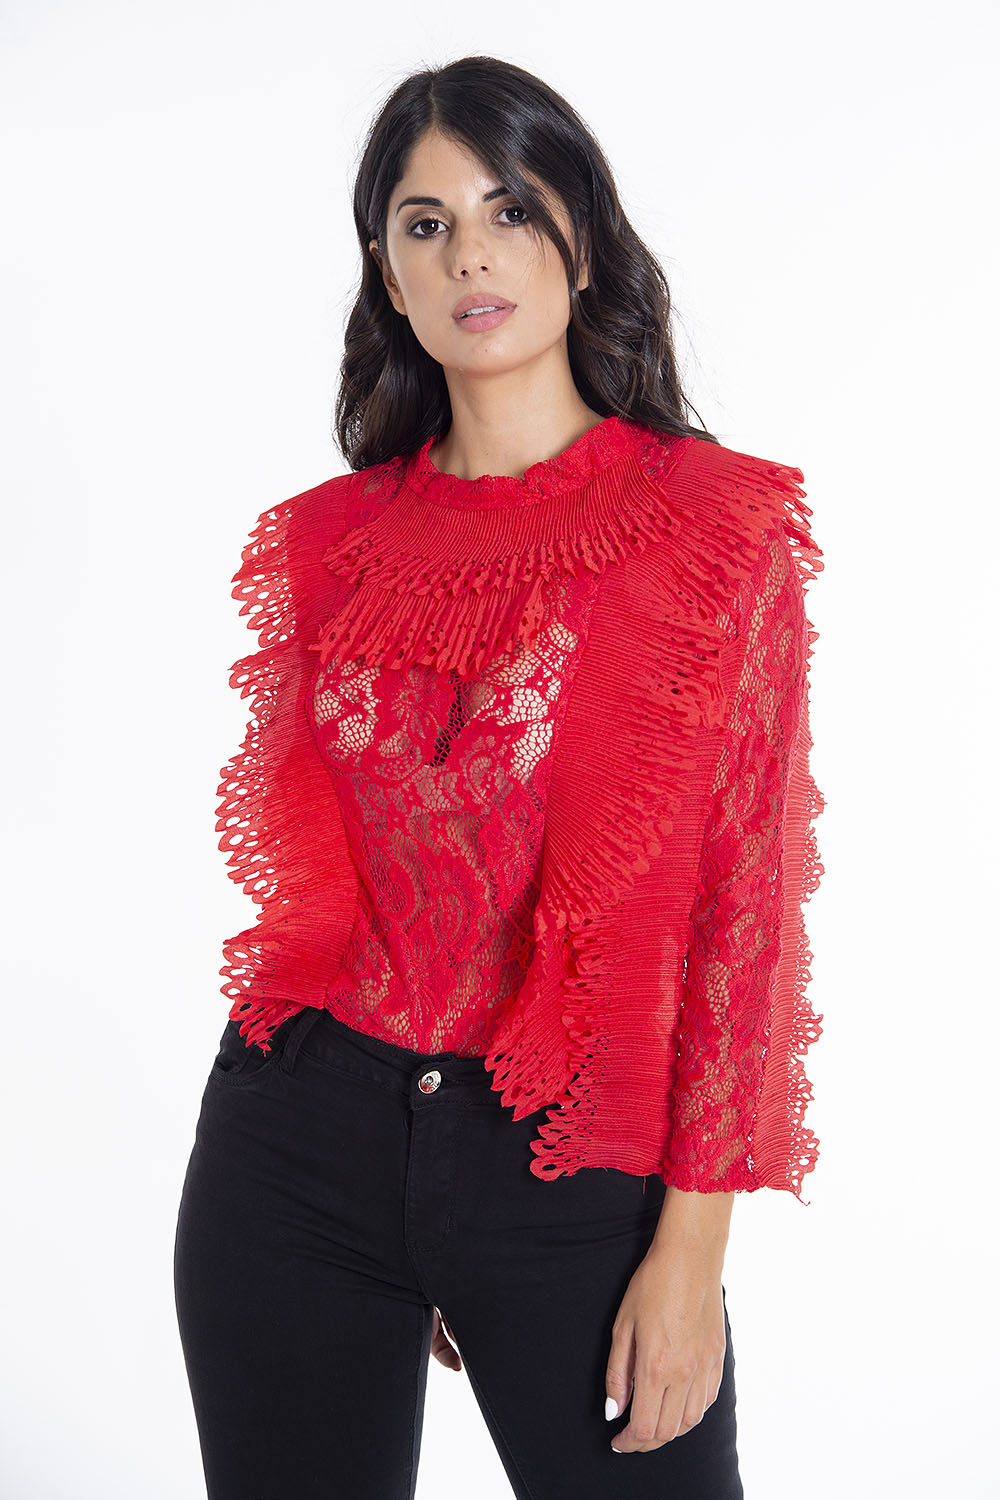 Lace long sleeved 3D frills body